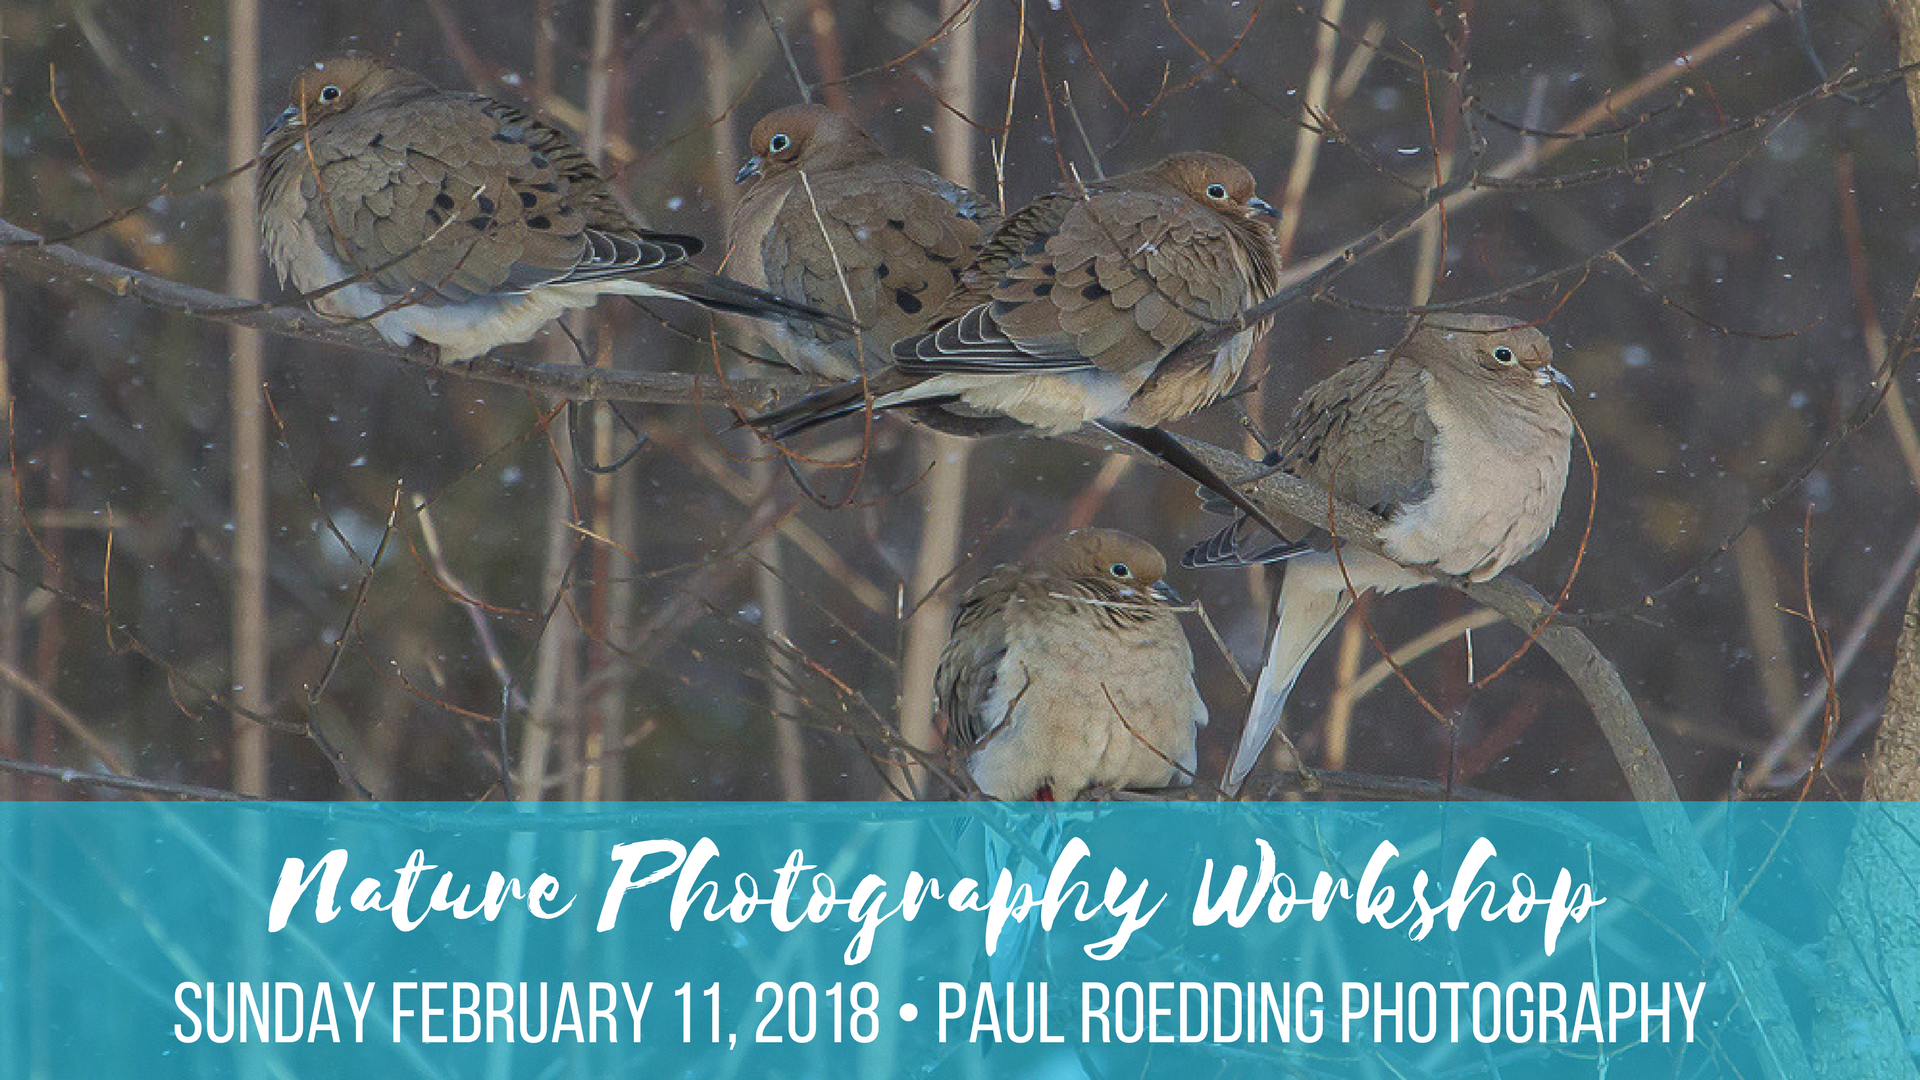 Nature Photography Workshop February 11 2018 - Upcoming Events